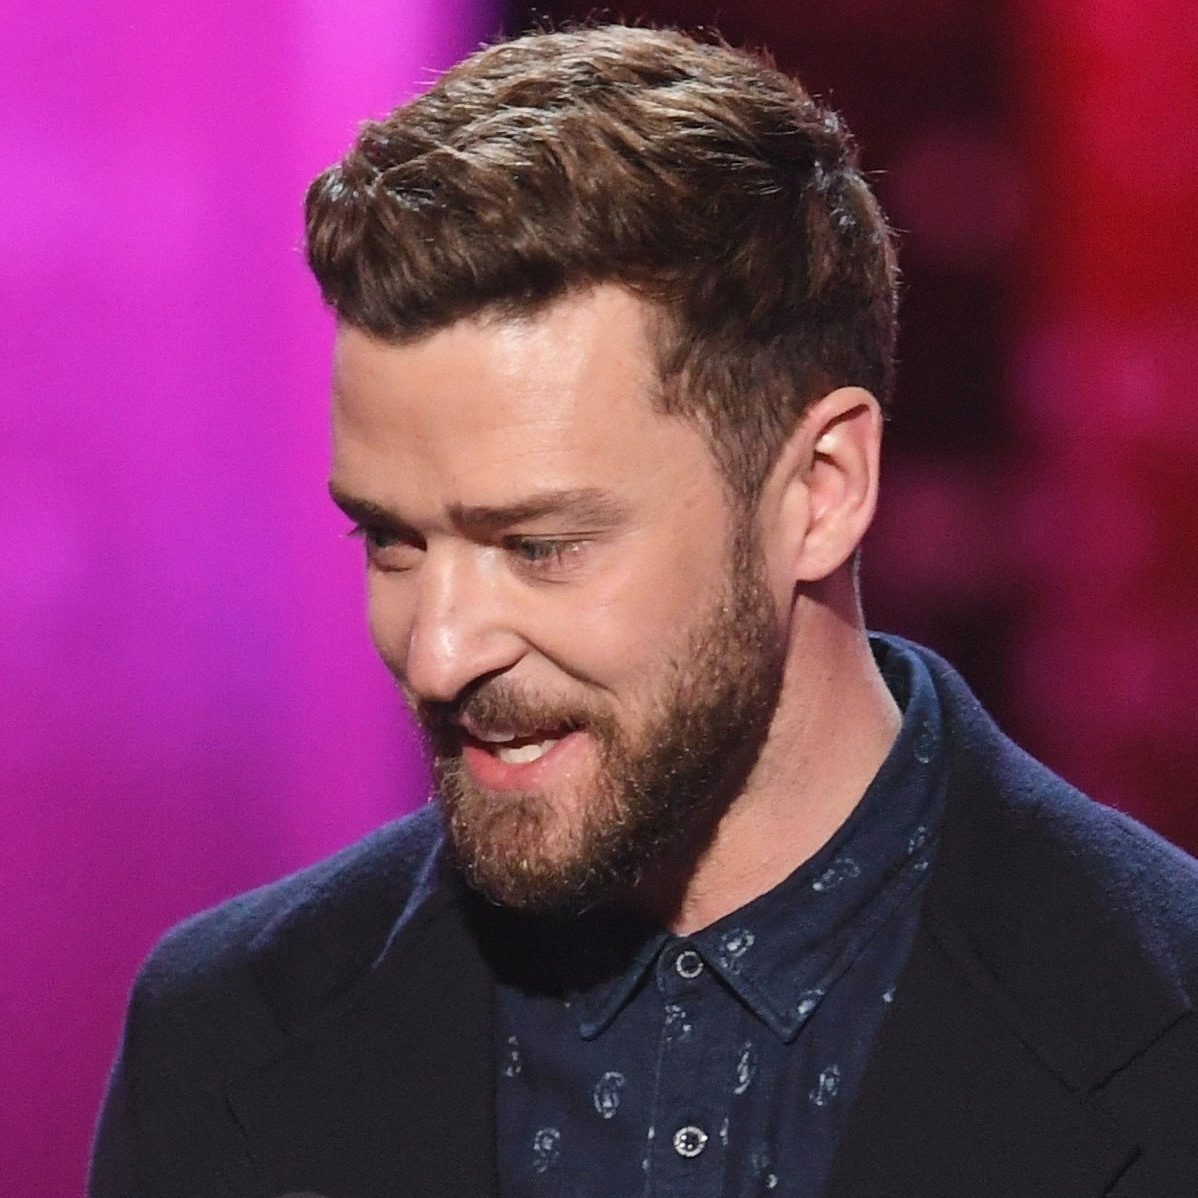 The Best Justin Timberlake Haircut Pictures